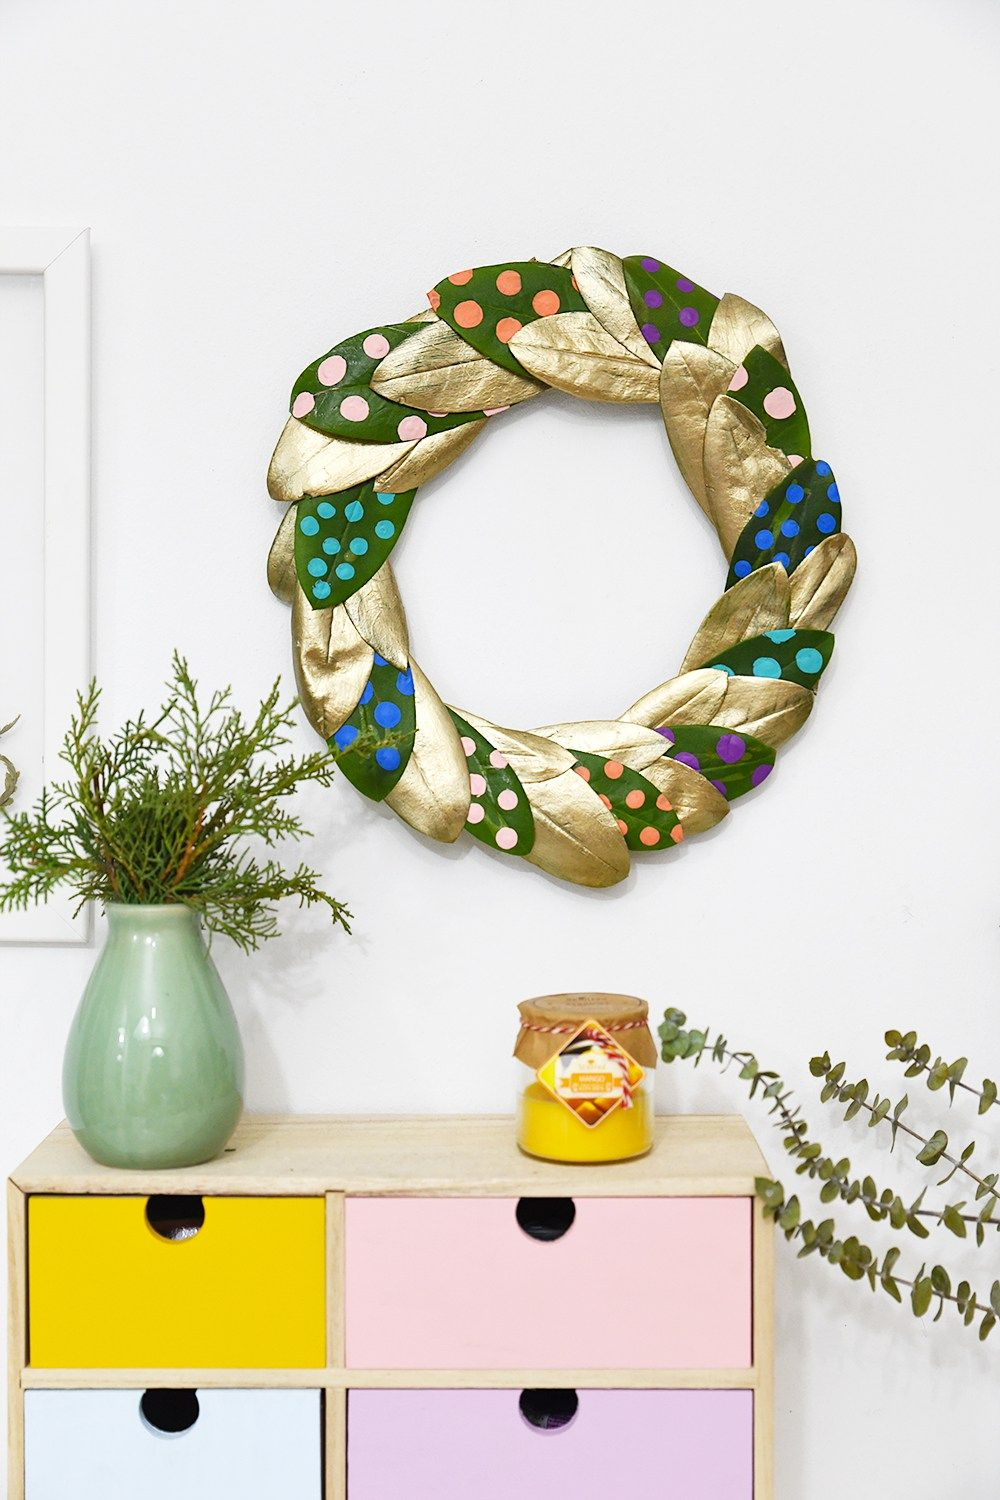 DIY Dotted and Golden Wreath   Wreaths, Holidays and DIY ideas